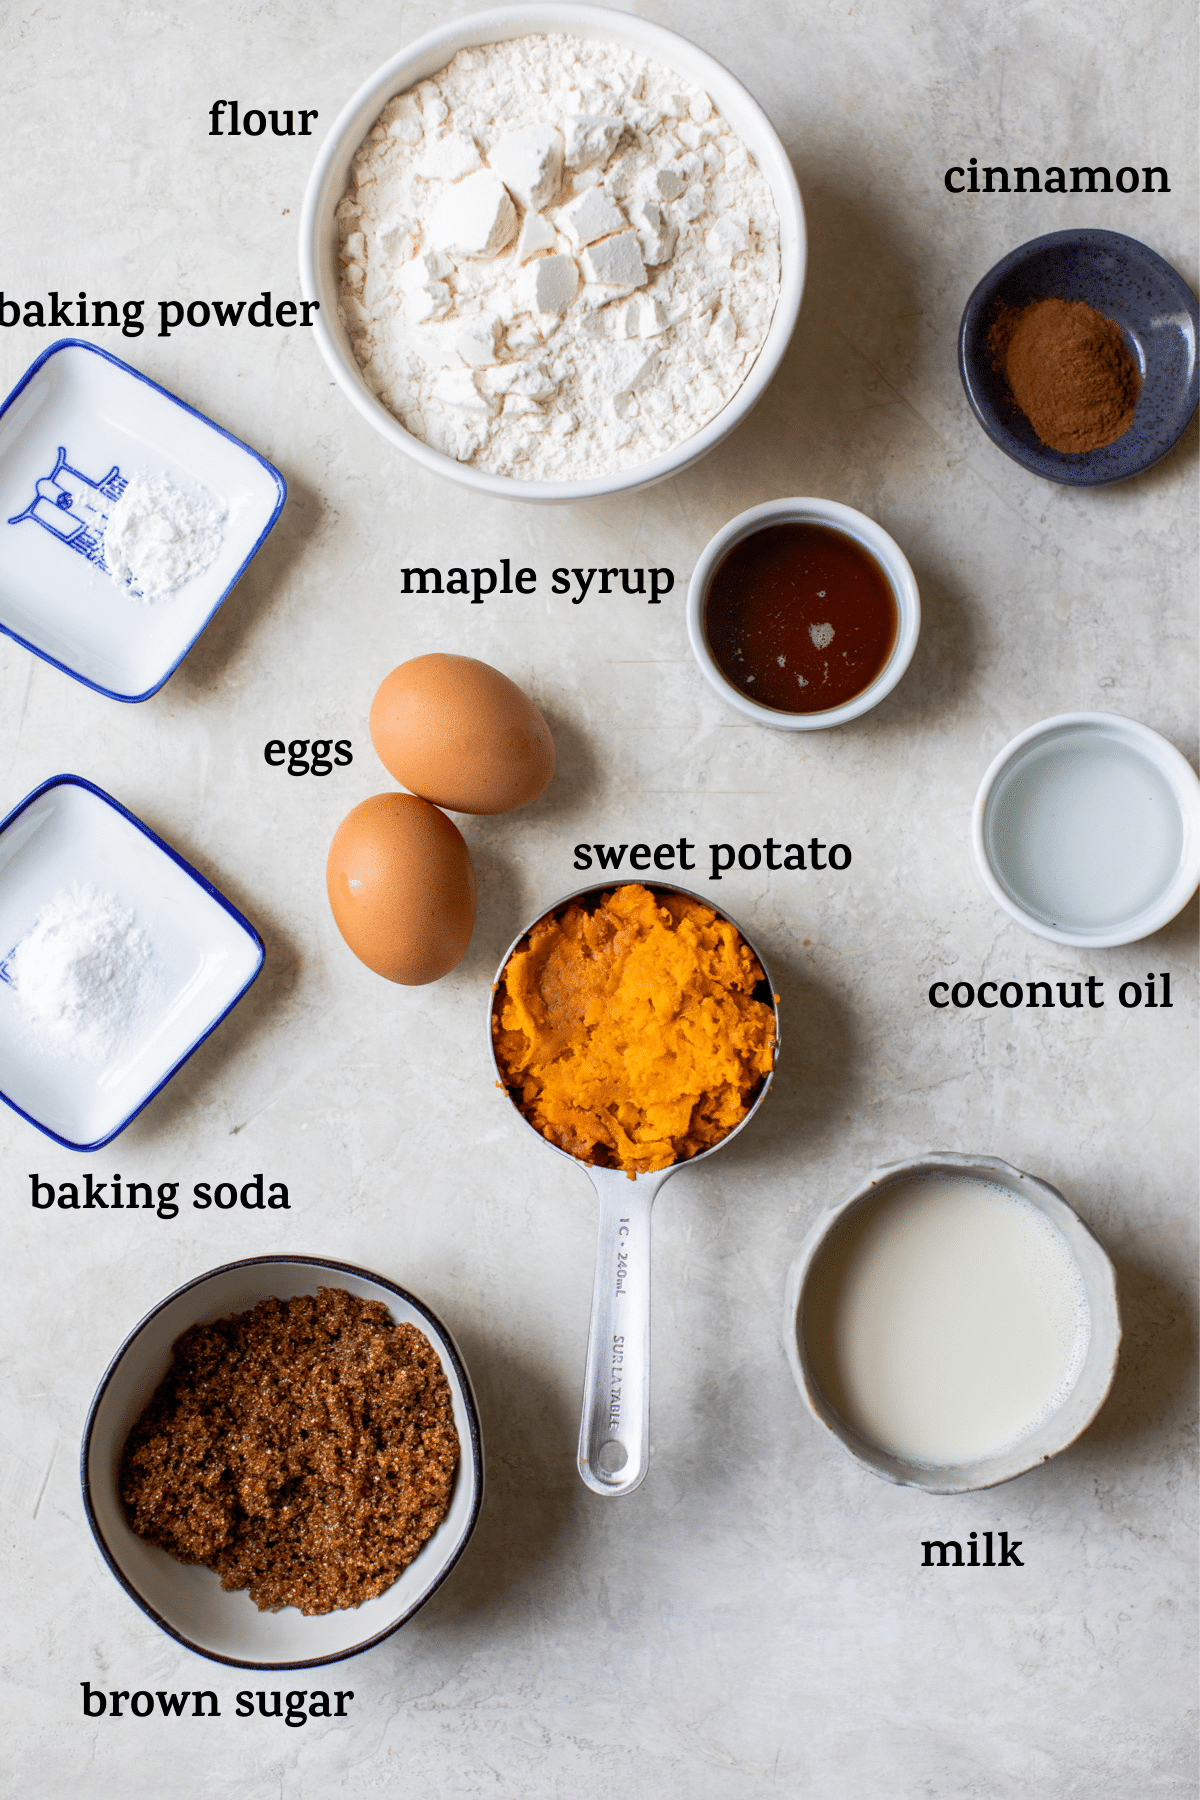 muffin ingredients with text overlay